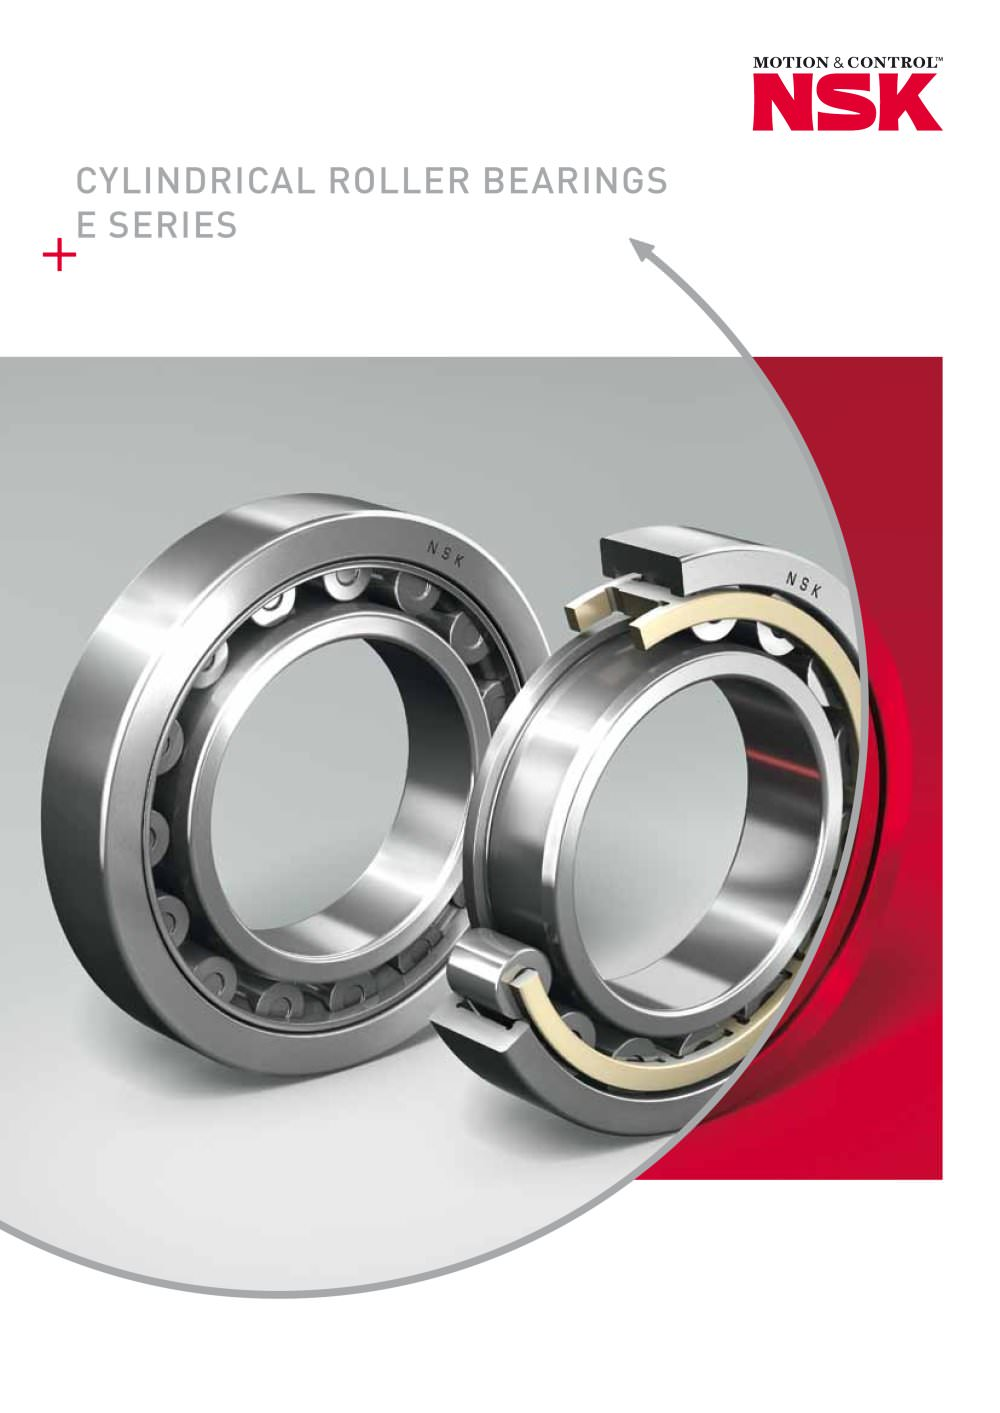 Ew Series Em Ew Series Cylindrical Roller Bearings Nsk Europe Ltd Pdf